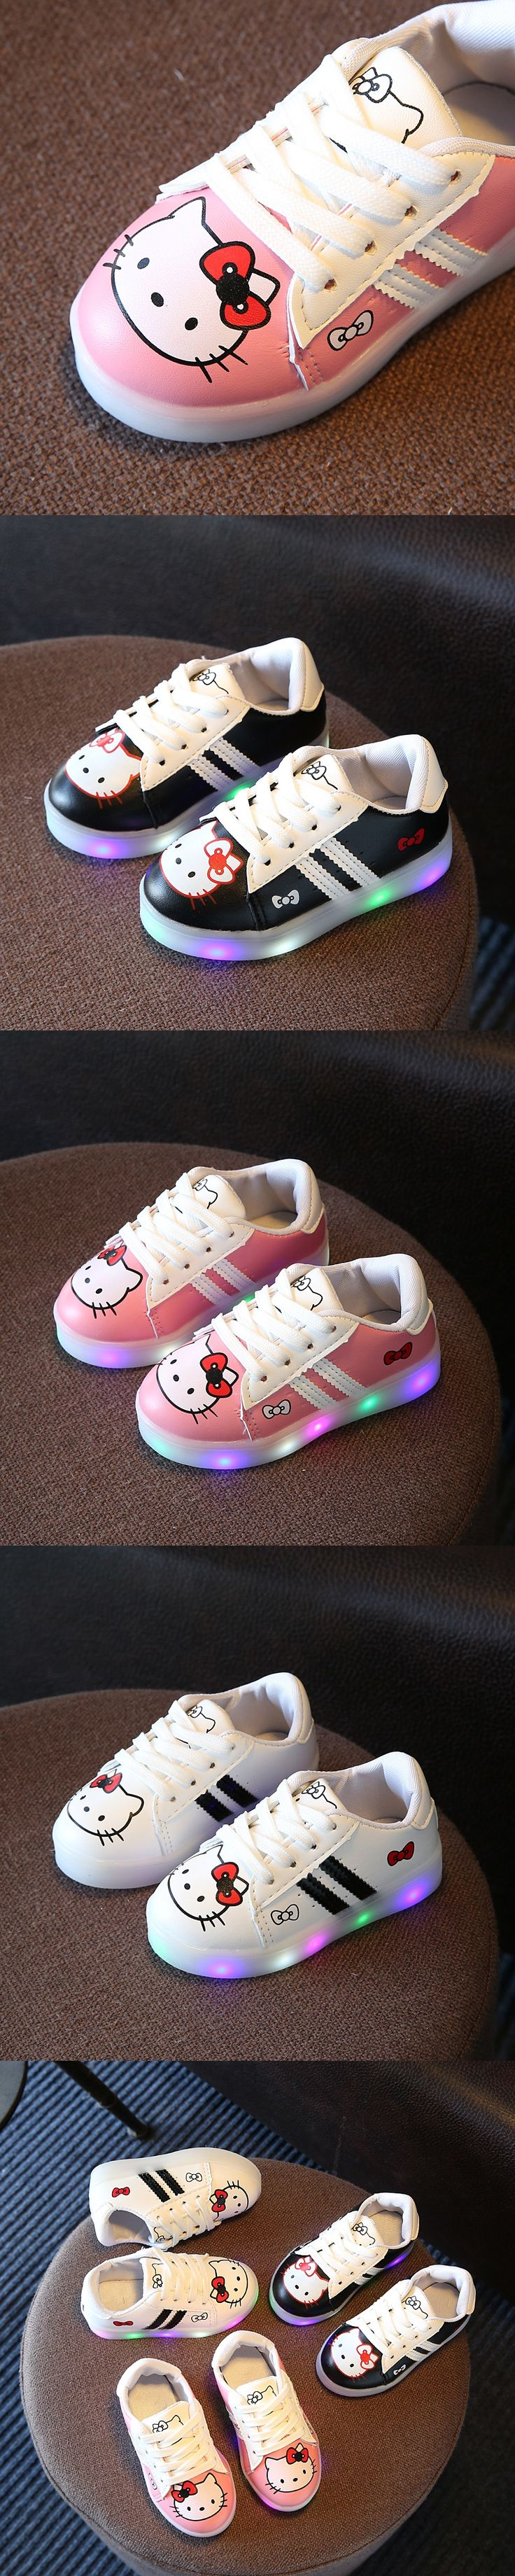 New 2017 European casual Cool LED Light girls boys shoes Cute casual kids glowing sneakers Net breathable baby children shoes